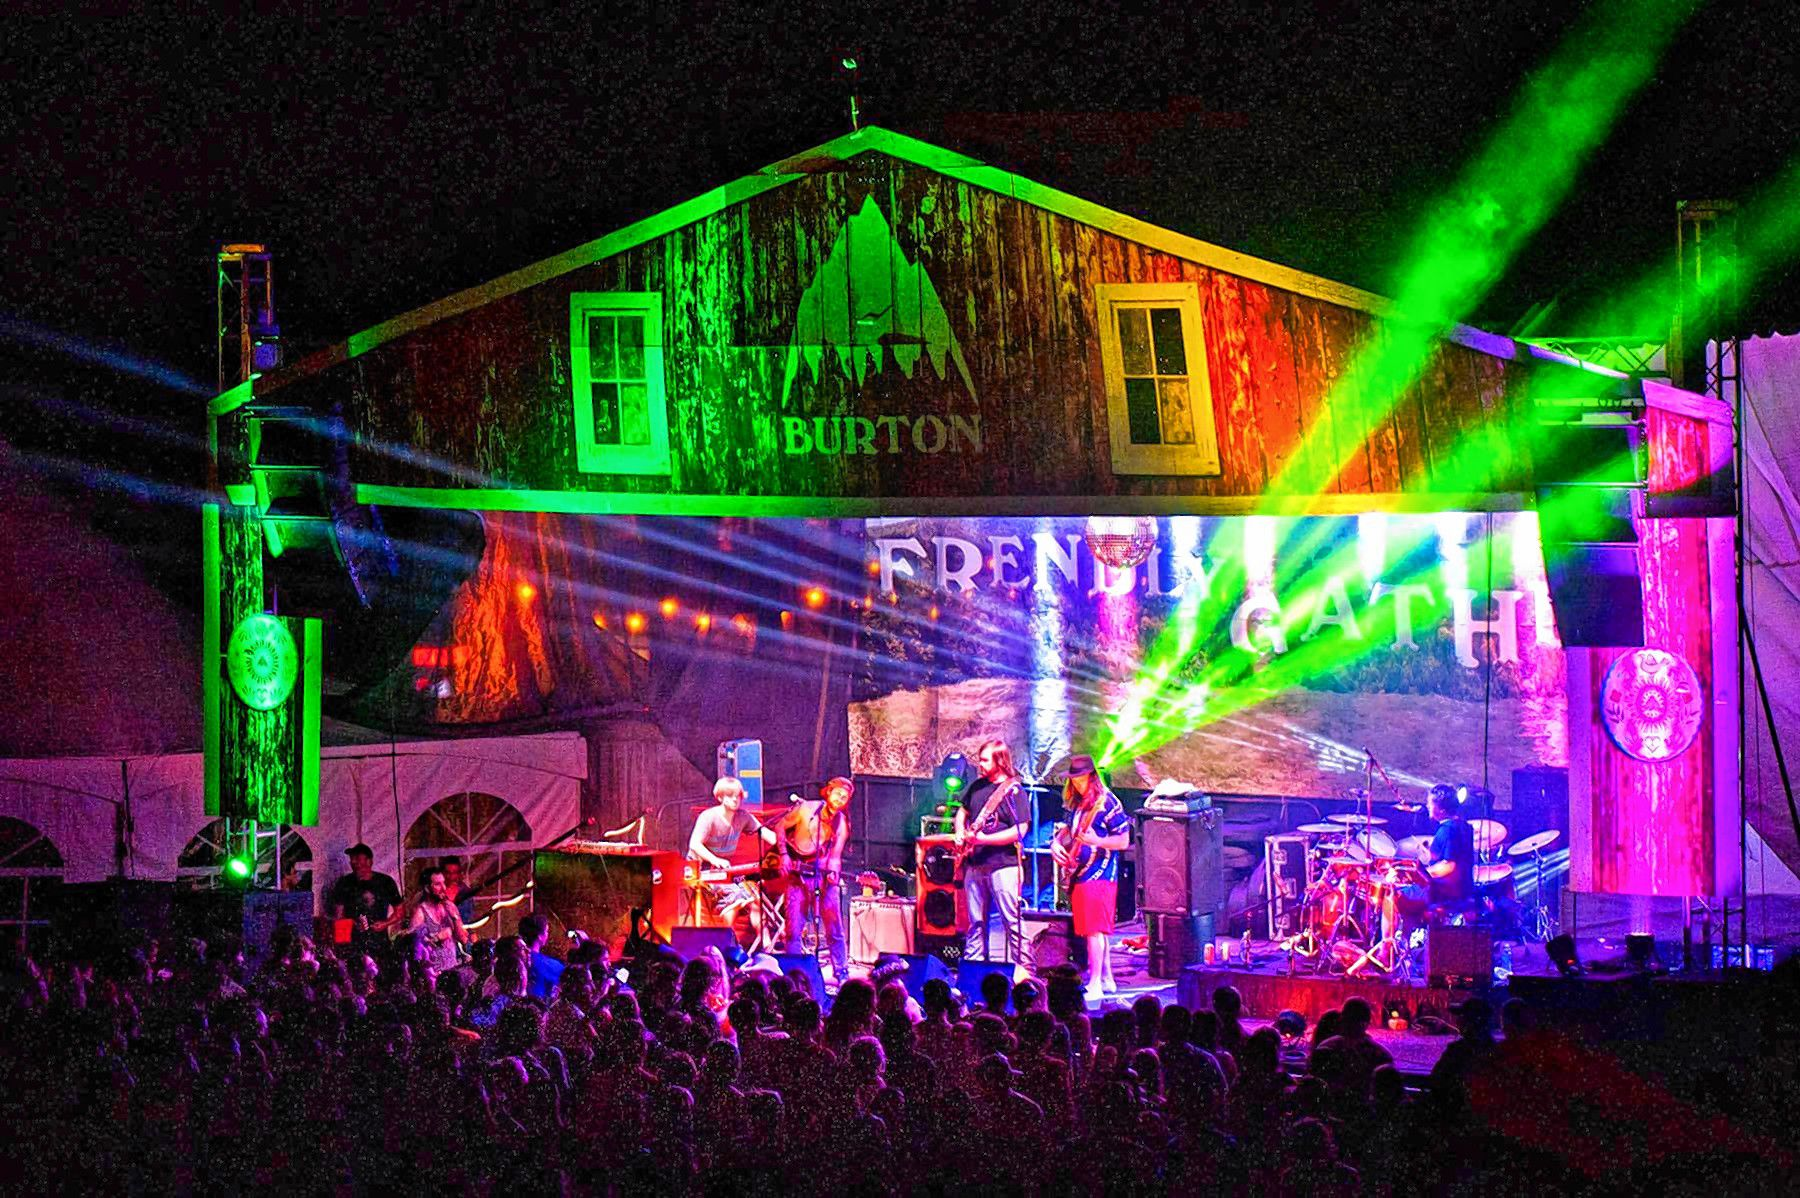 Frendly Gathering Festival in Southern Vermont